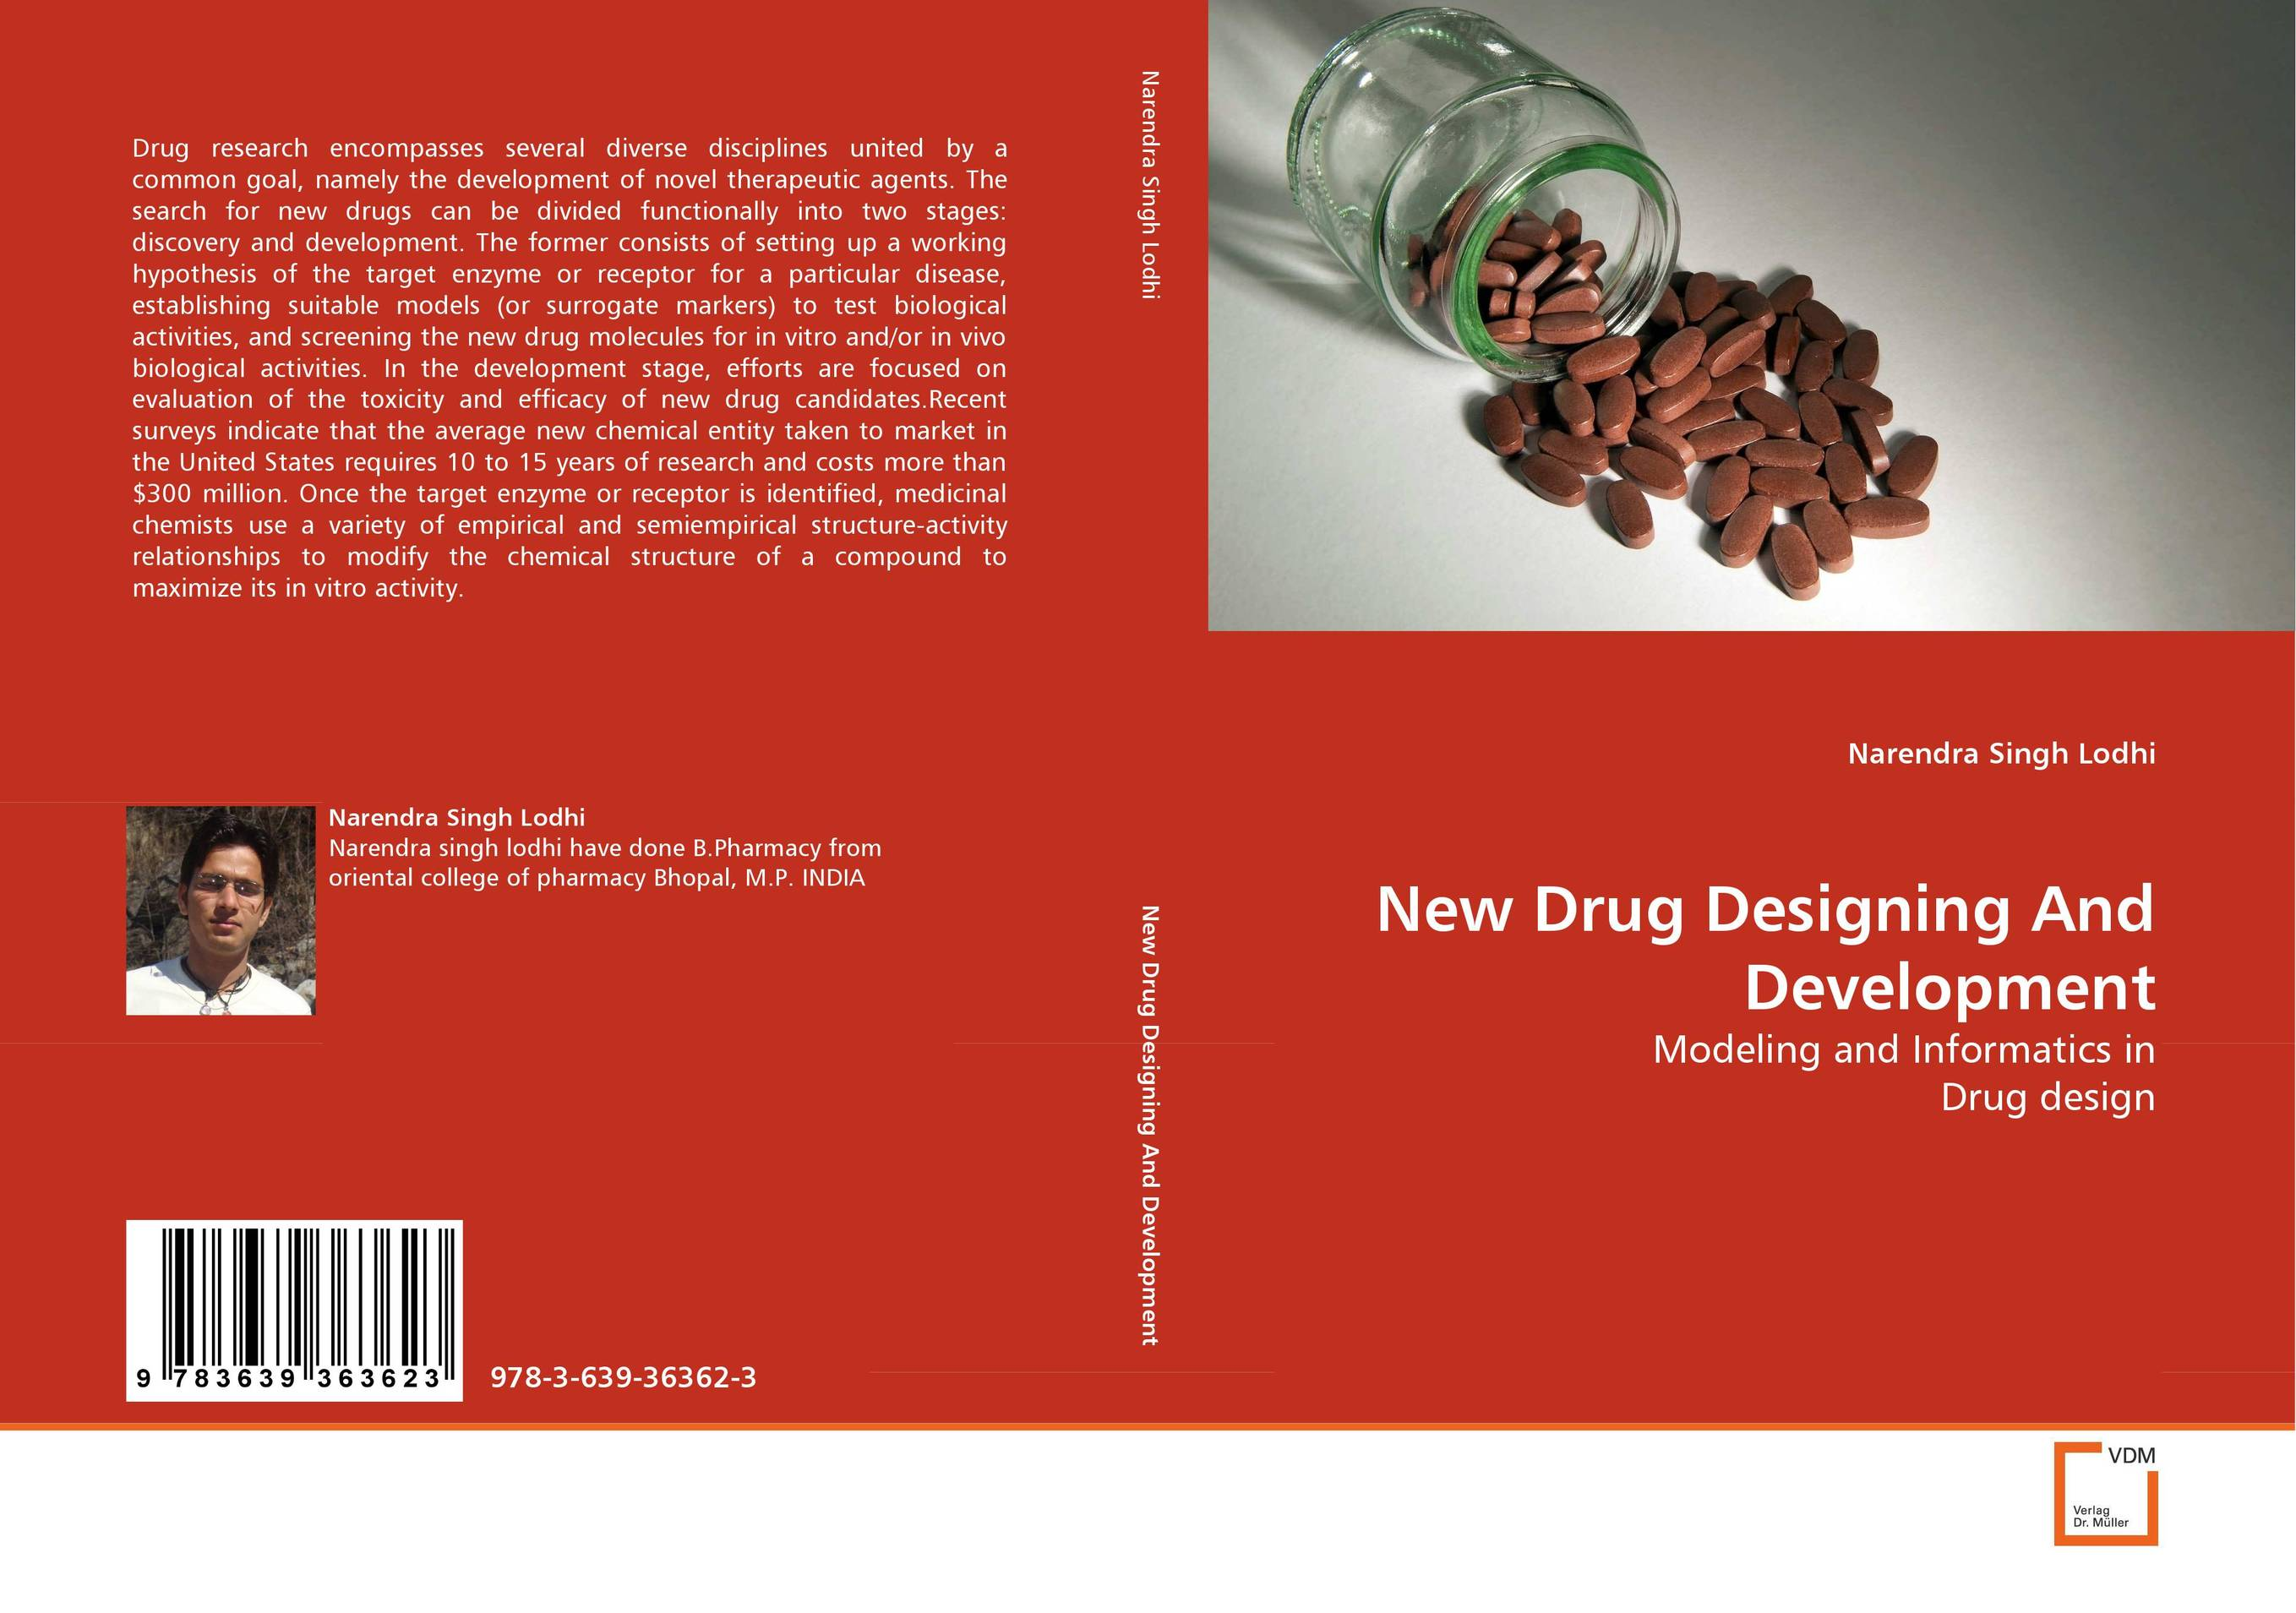 New Drug Designing And Development drug discovery and design